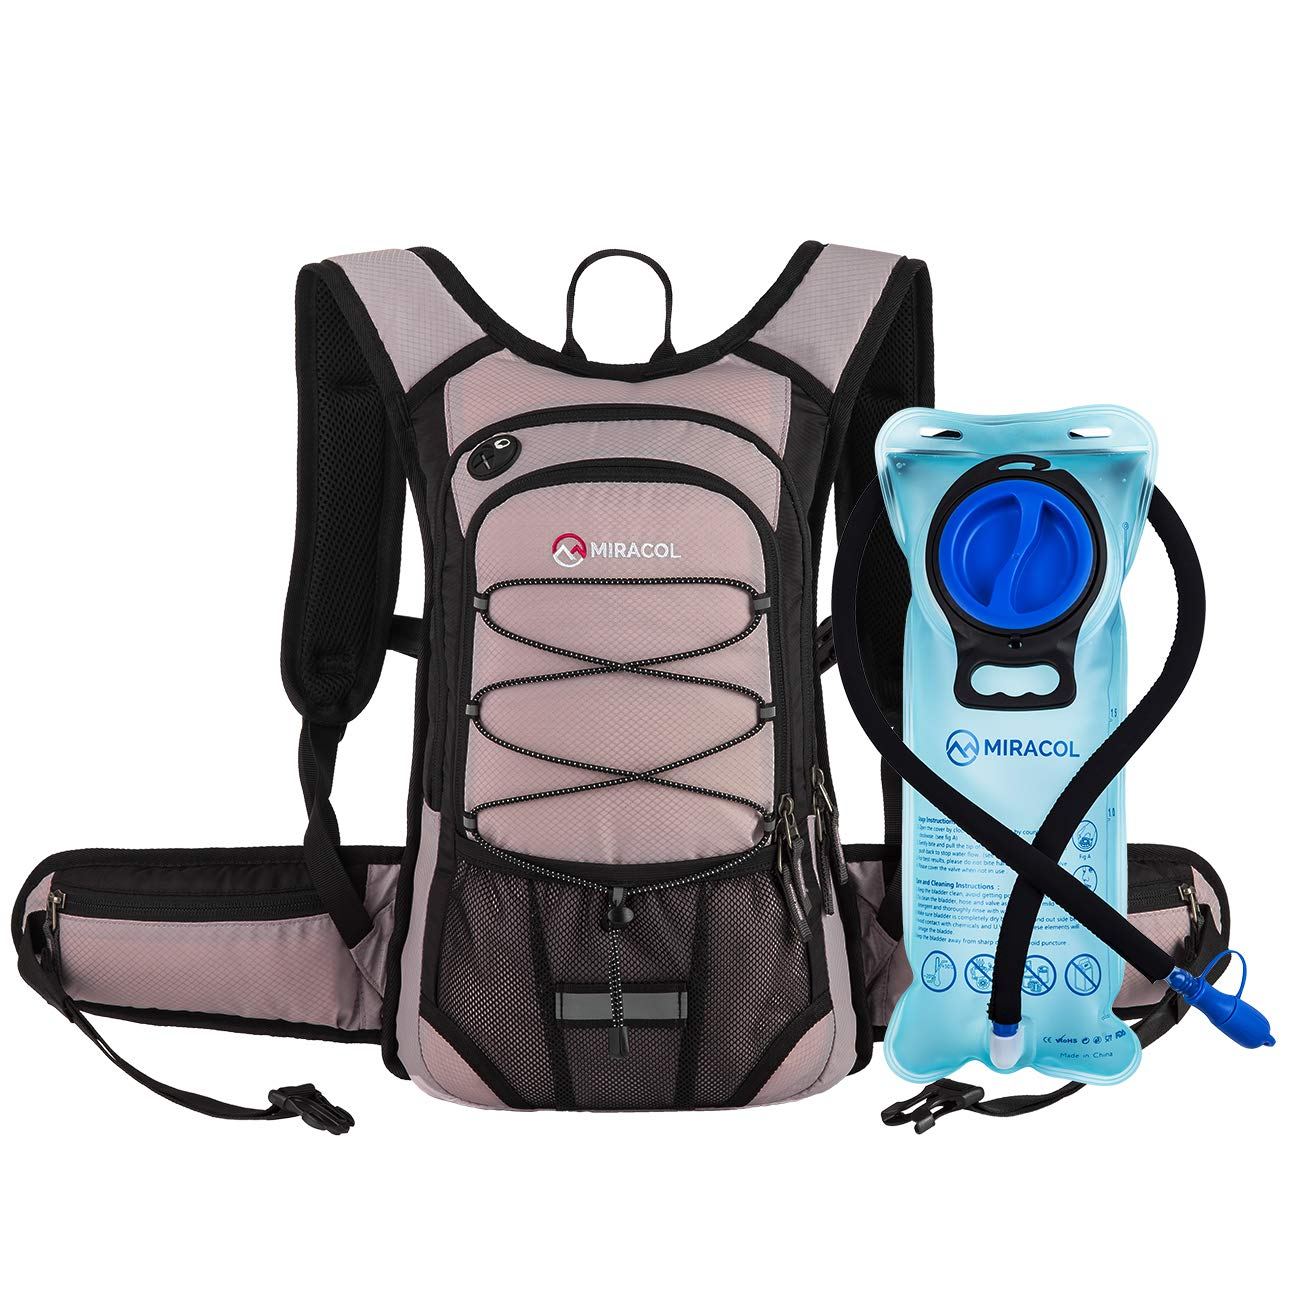 MIRACOL Hydration Backpack with 2L BPA Free Water Bladder, Thermal Insulation Pack Keeps Liquid Cool up to 4 Hours, Perfect Outdoor Gear for Hiking, Cycling, Camping, Running (Pastel Violet)